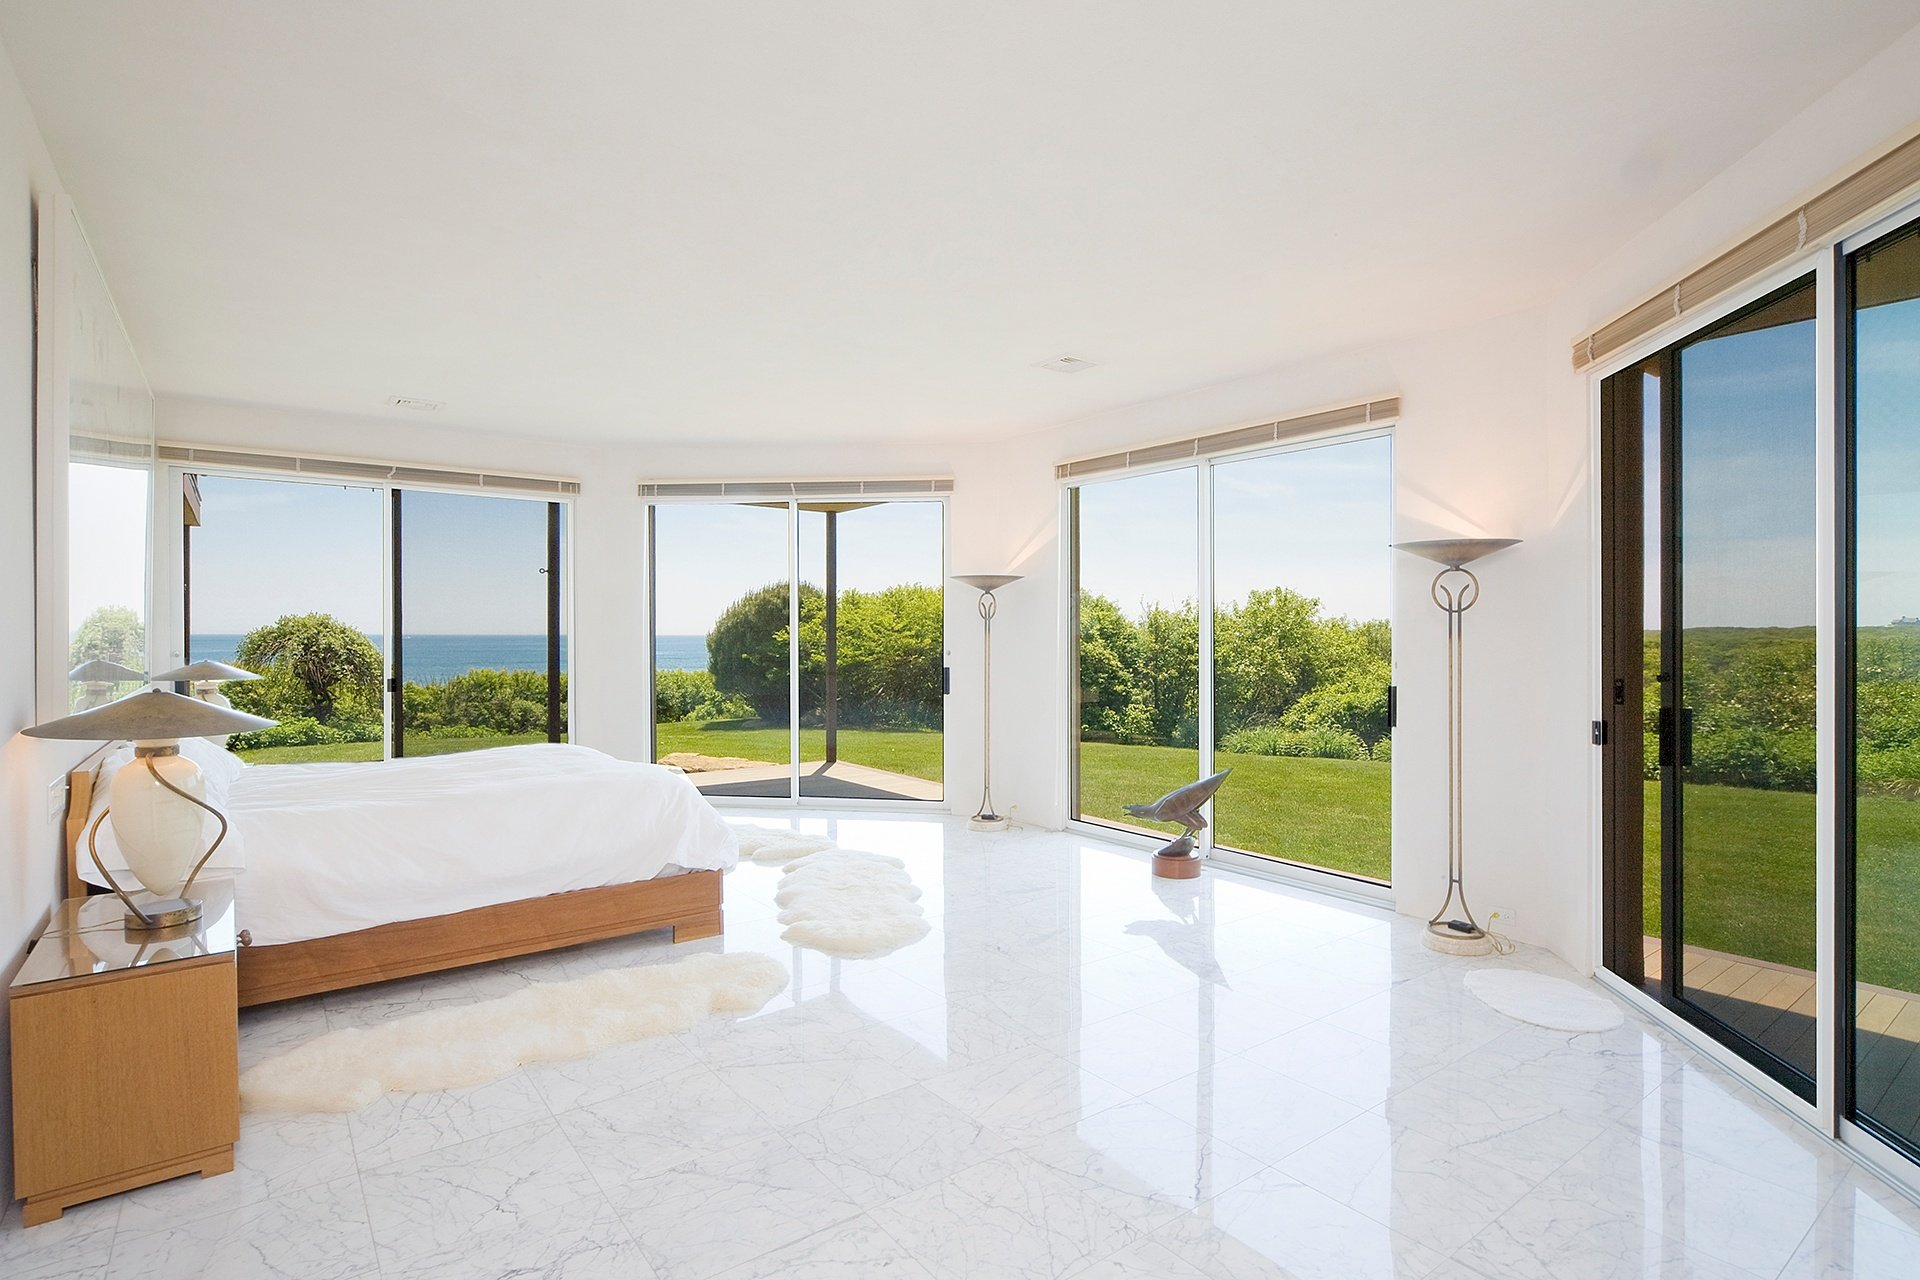 The views from the master suite are equally impressive, while floor-to-ceiling walls of glass open to lush, landscaped lawns.